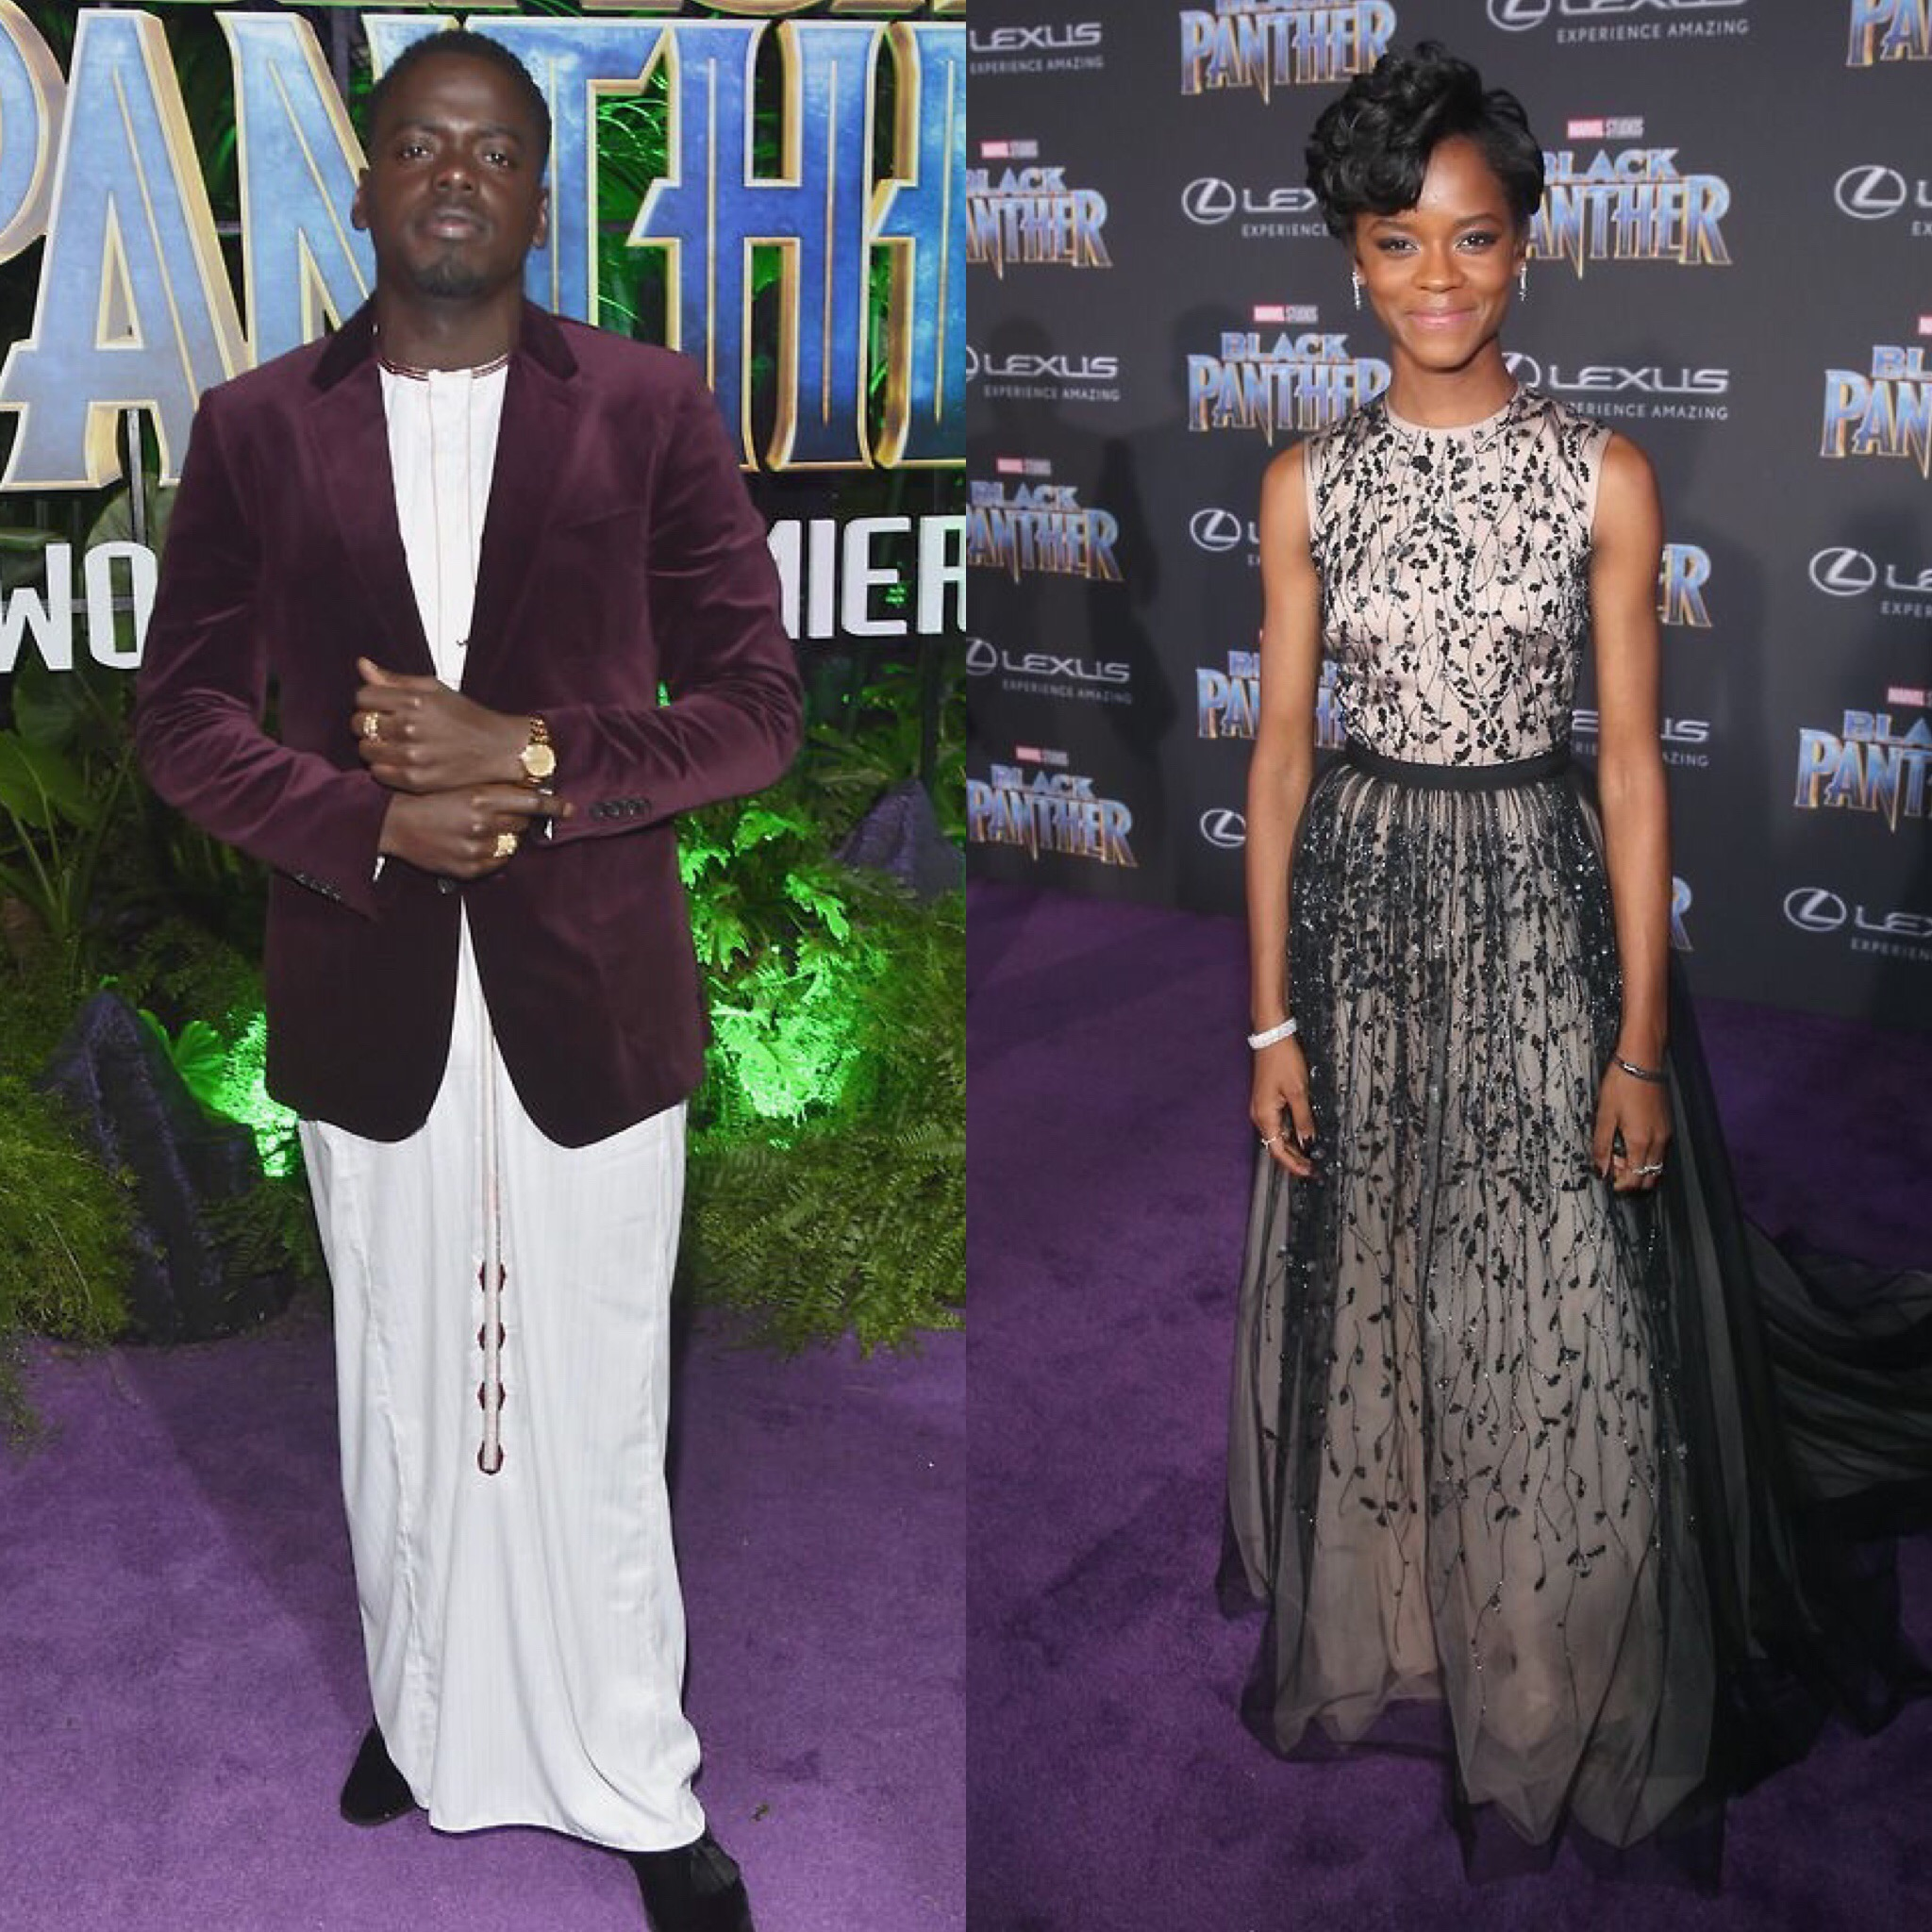 Round Table Discussion With Daniel Kaluuya & Letitia Wright From Black Panther